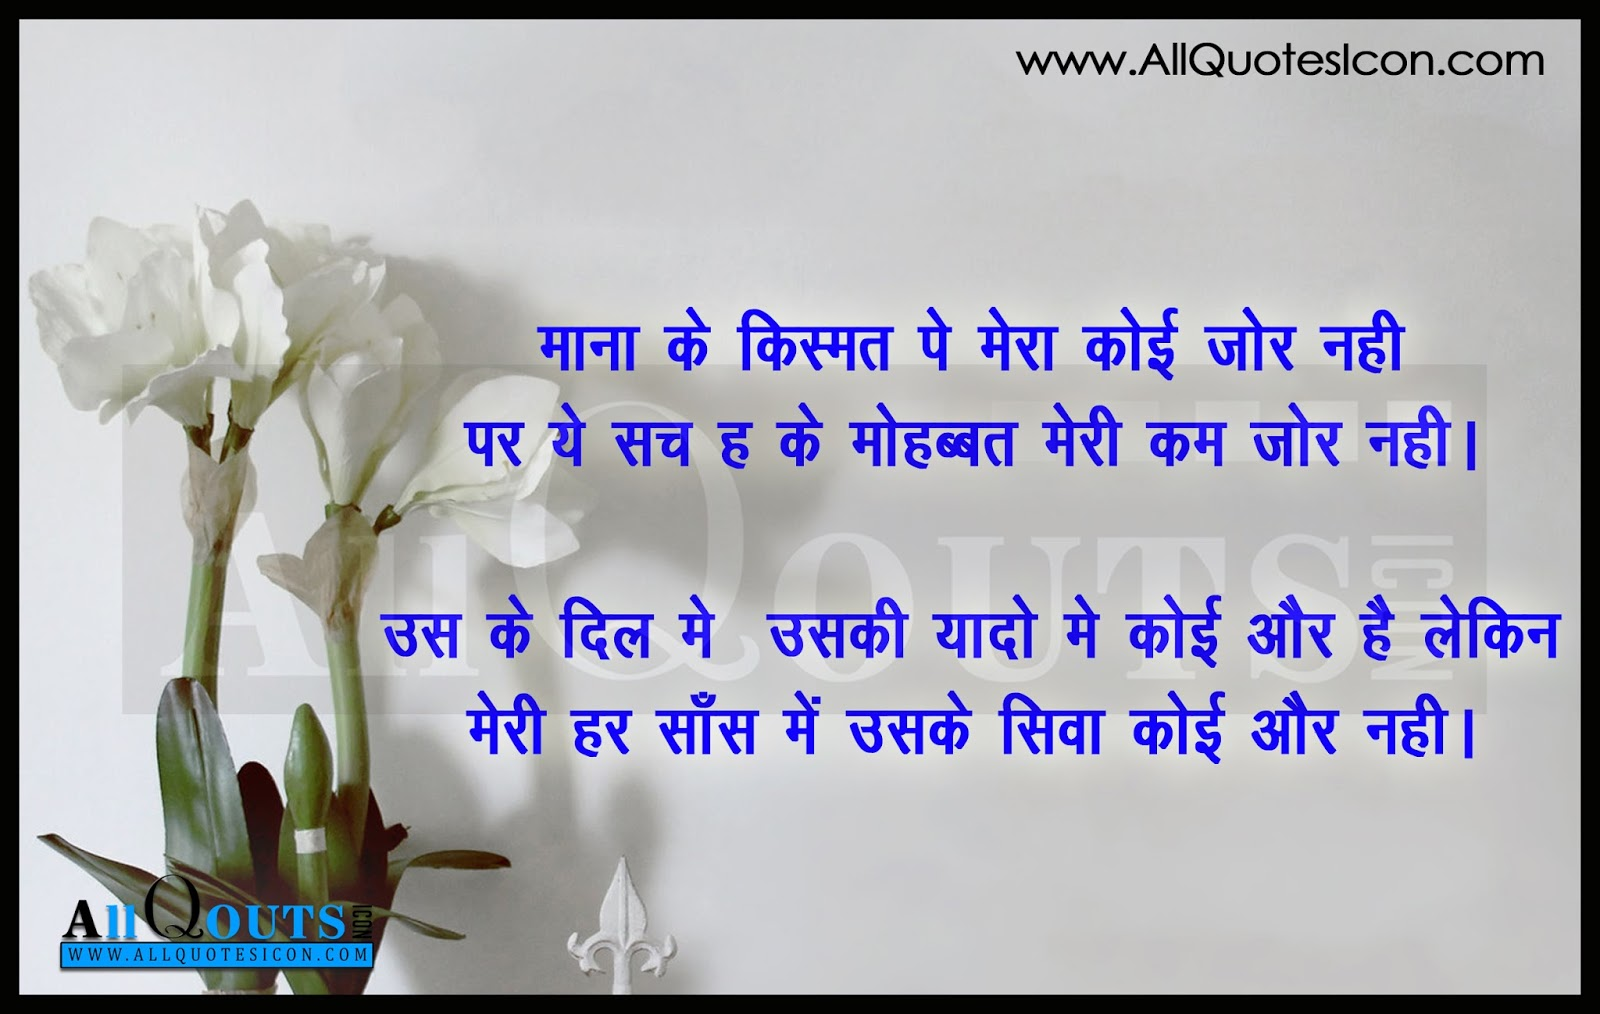 Best Hindi Friendship Quotes And Feelings Hd Wallpapers Best